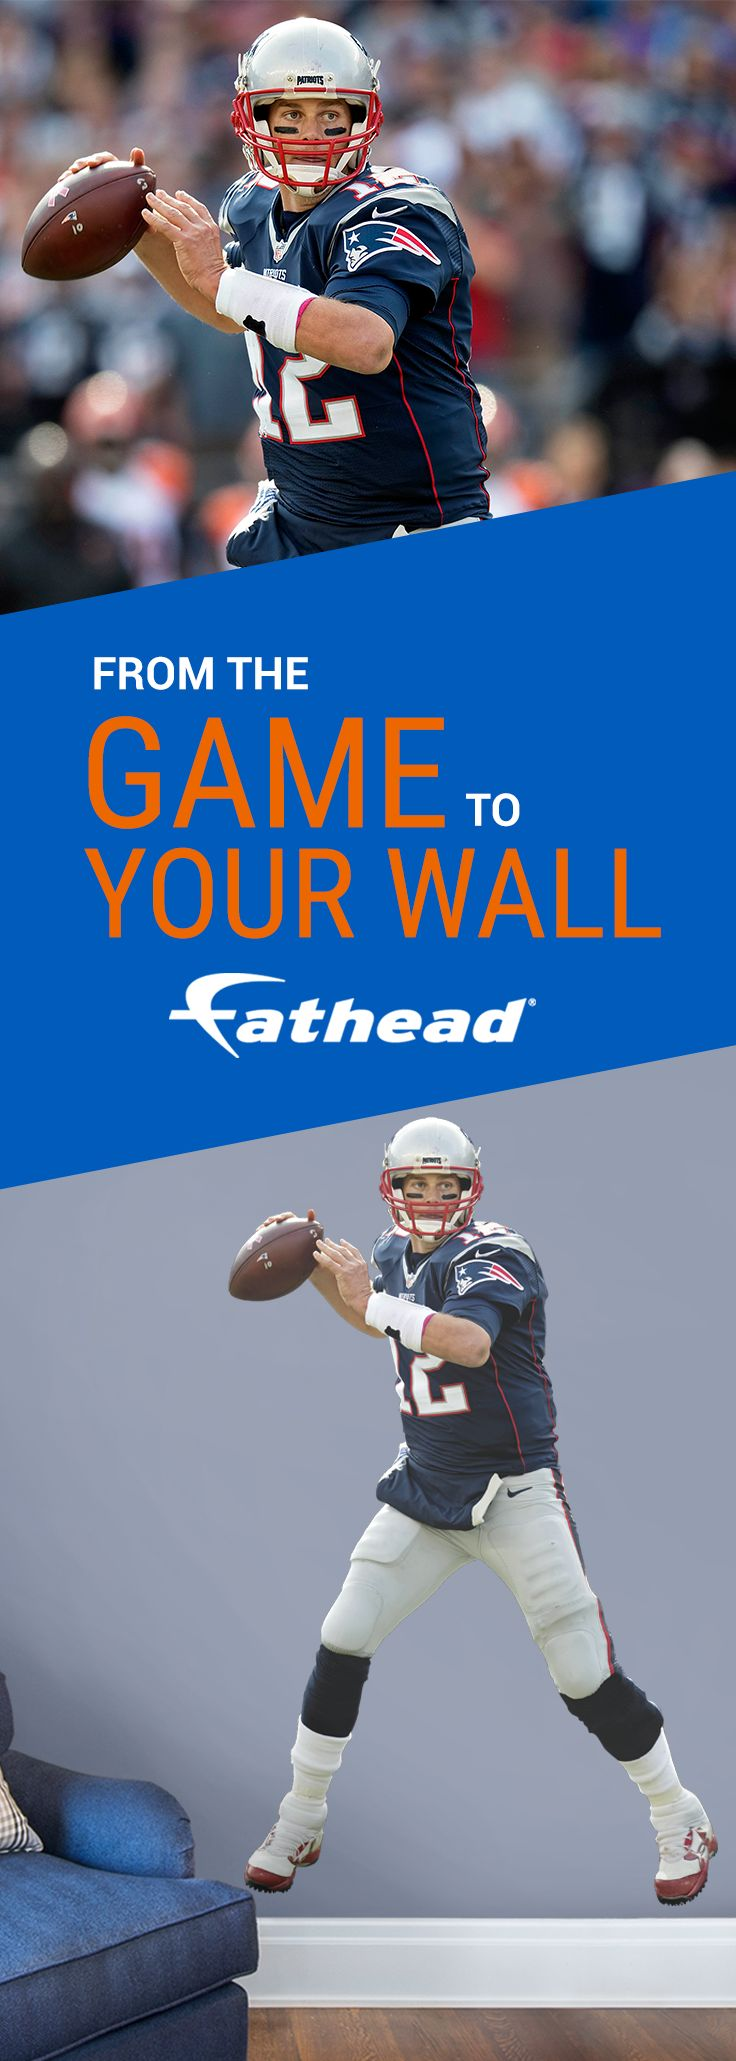 """Remember Tom Brady's best moments with a REAL.BIG. Fathead. The New England Patriots' Tom Brady life-size wall decal is easy to apply to your man cave, and you can remove it without any damage to your wall. Purchase the Tom Brady wall decal or any other of your favorite NFL player Fatheads today! Size: 4'0""""W X 6'5""""H. https://www.fathead.com/nfl/new-england-patriots/tom-brady-wall-decal/."""